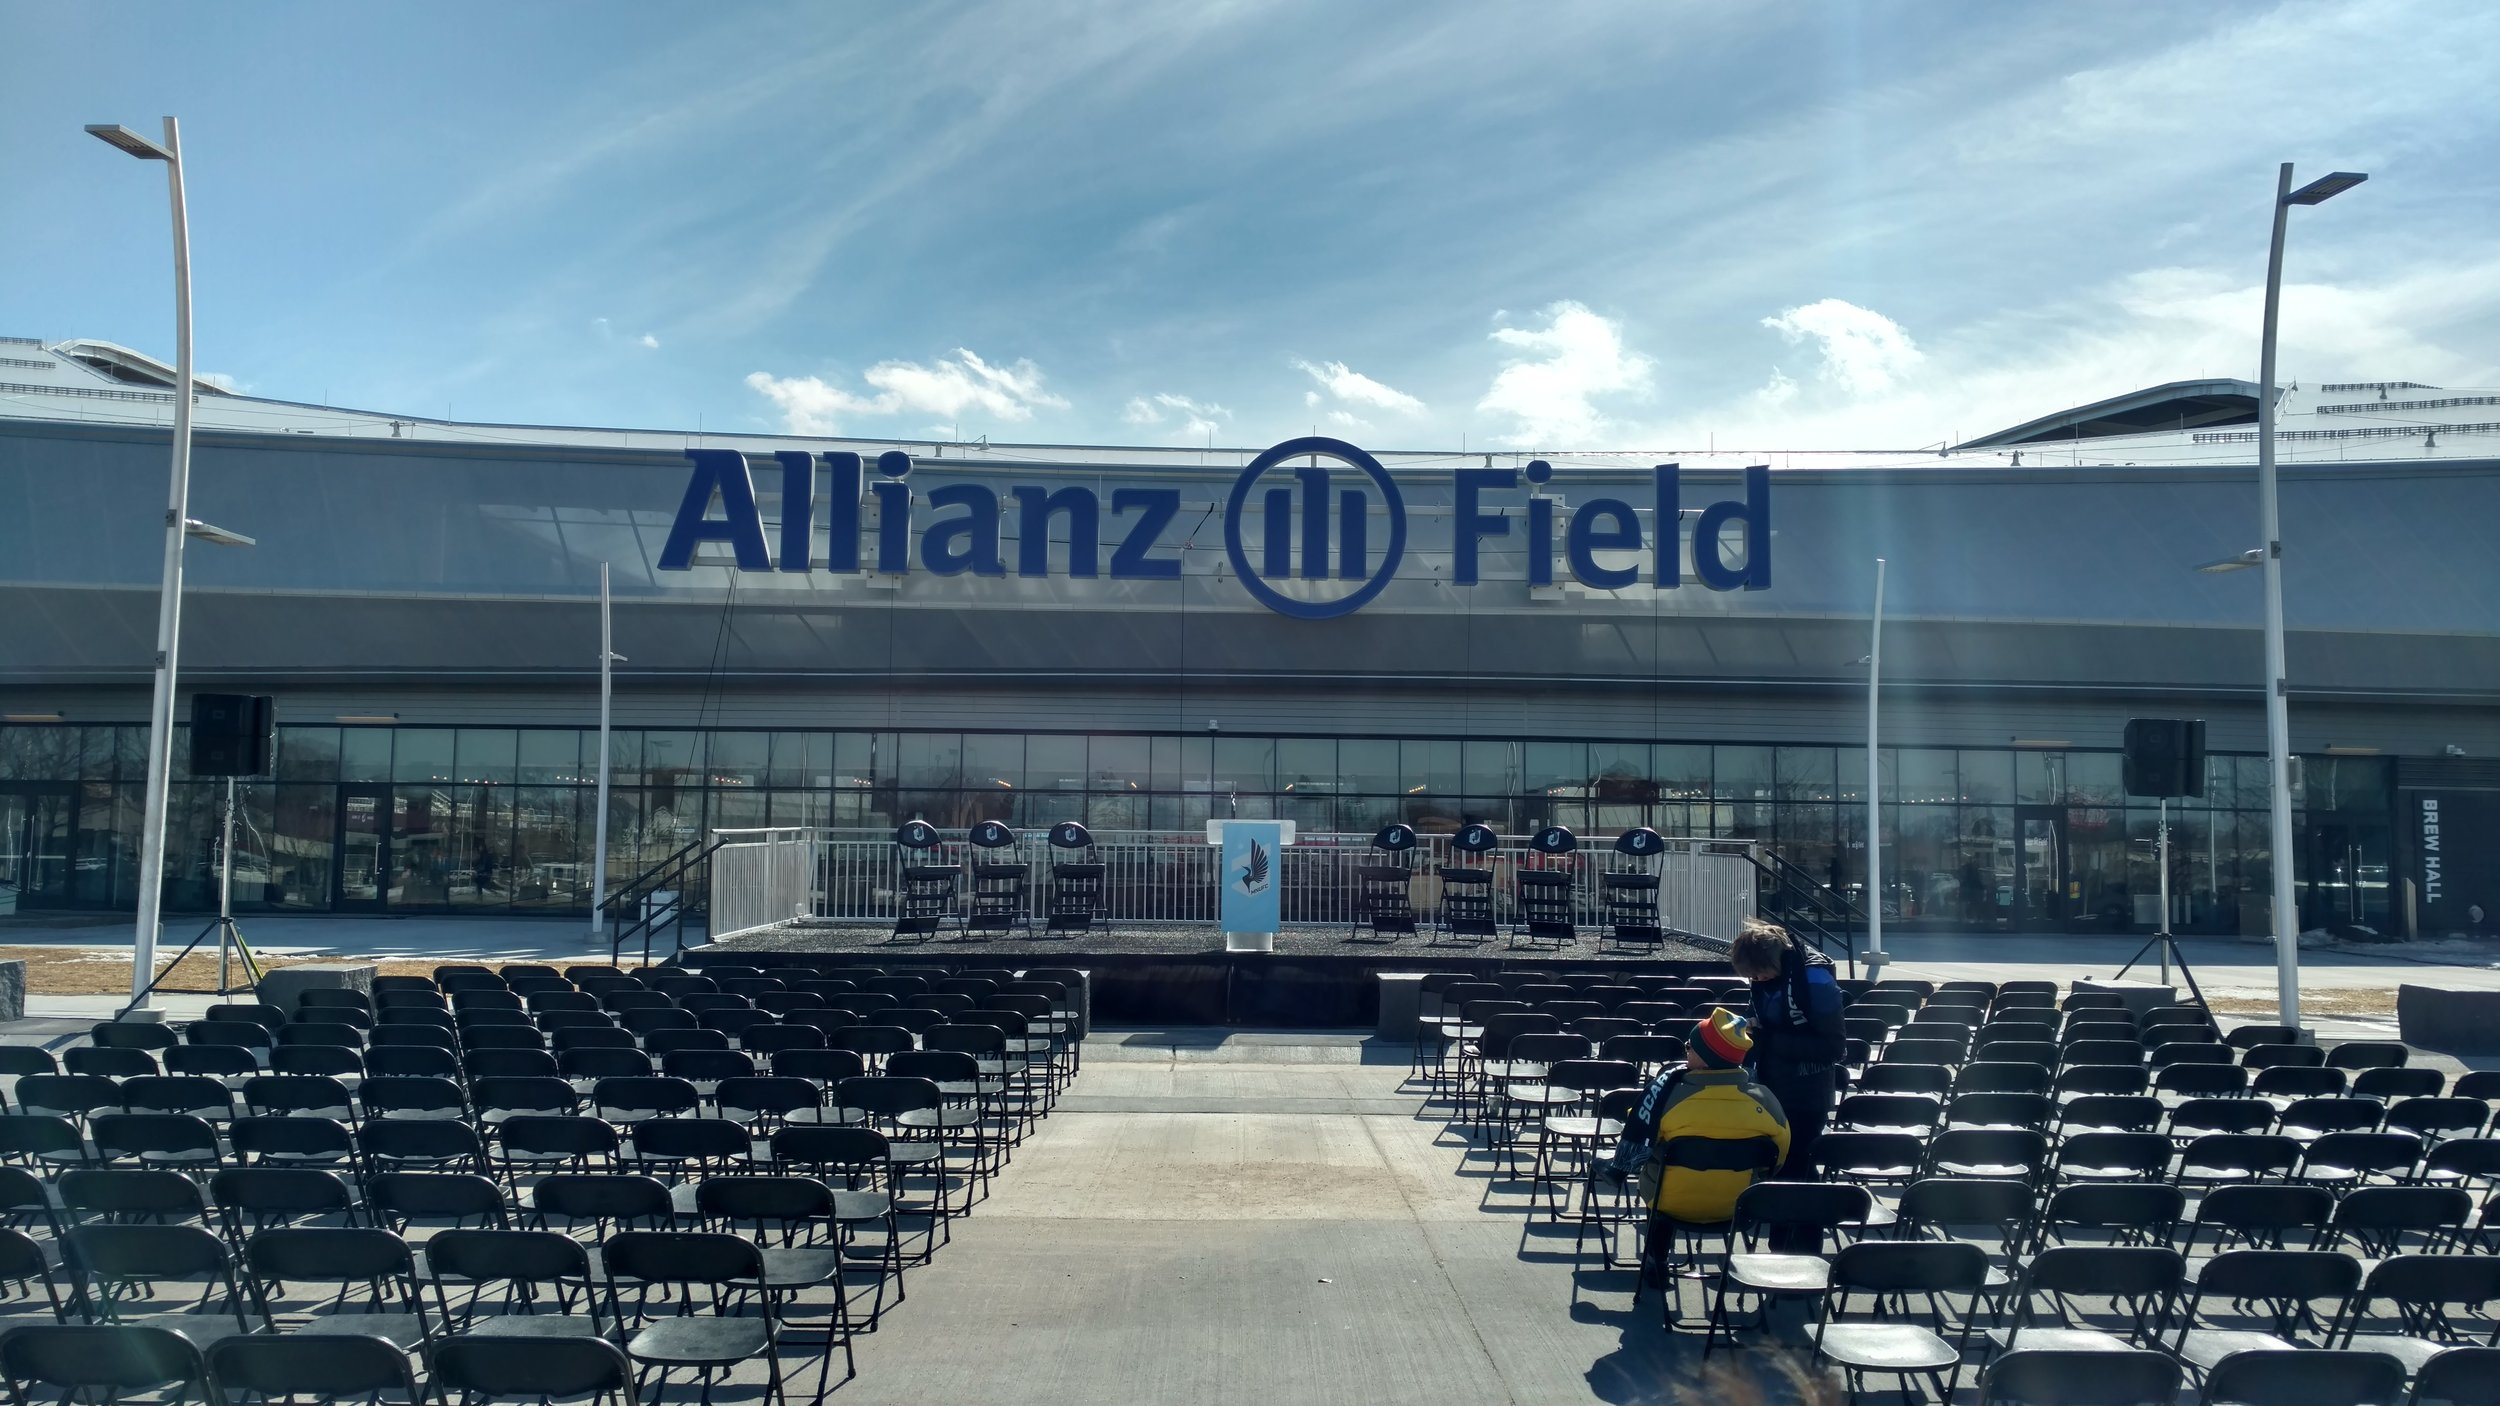 Picture of AV for You Rental Equipment at Allianz Field